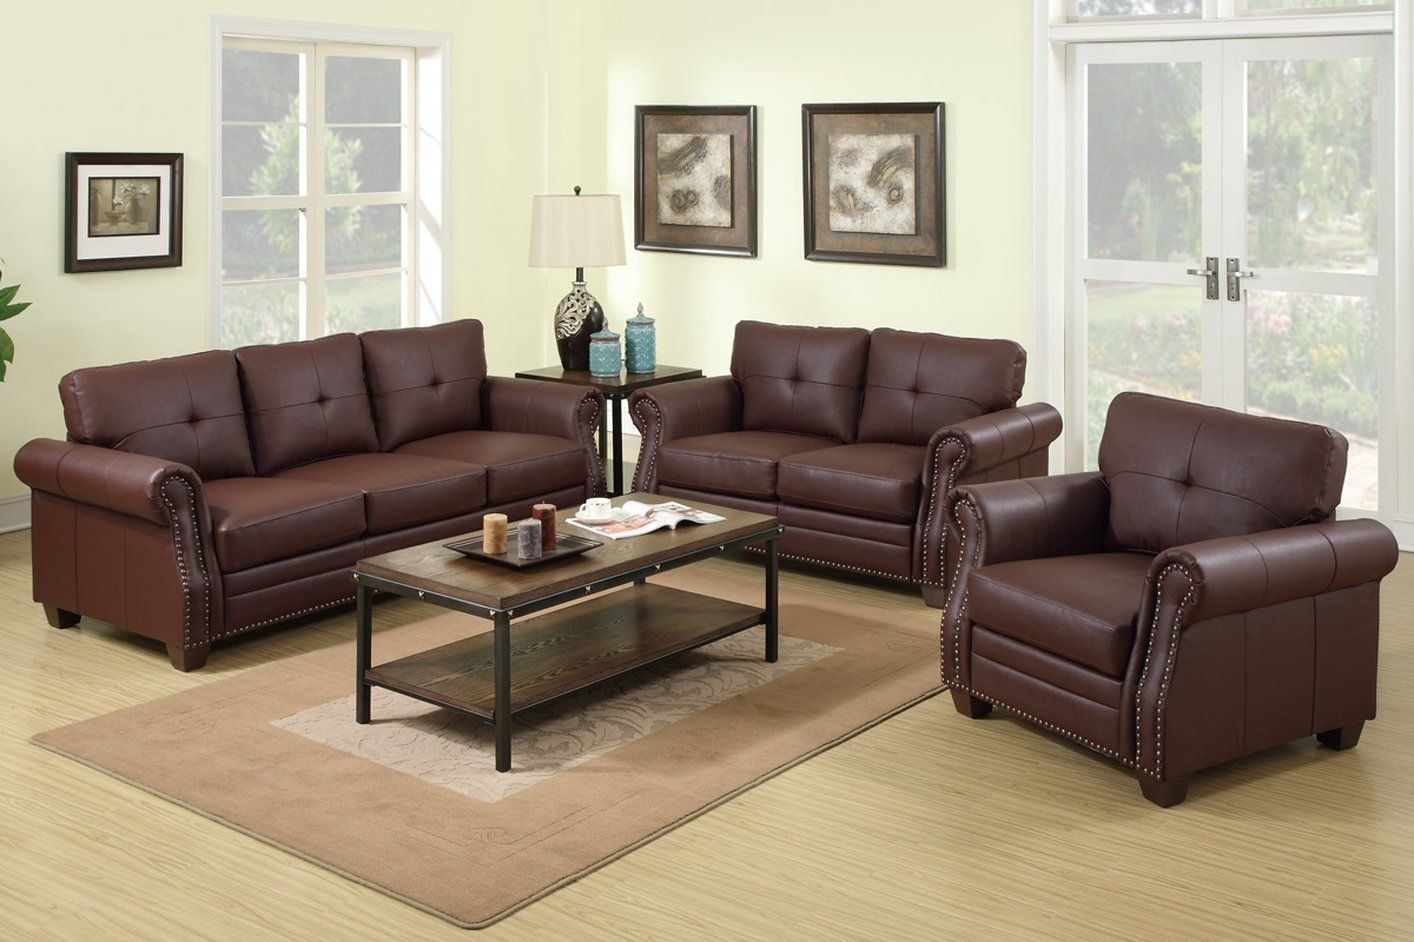 Discover ideas about genuine leather sofa sofa and loveseat sets under 1000